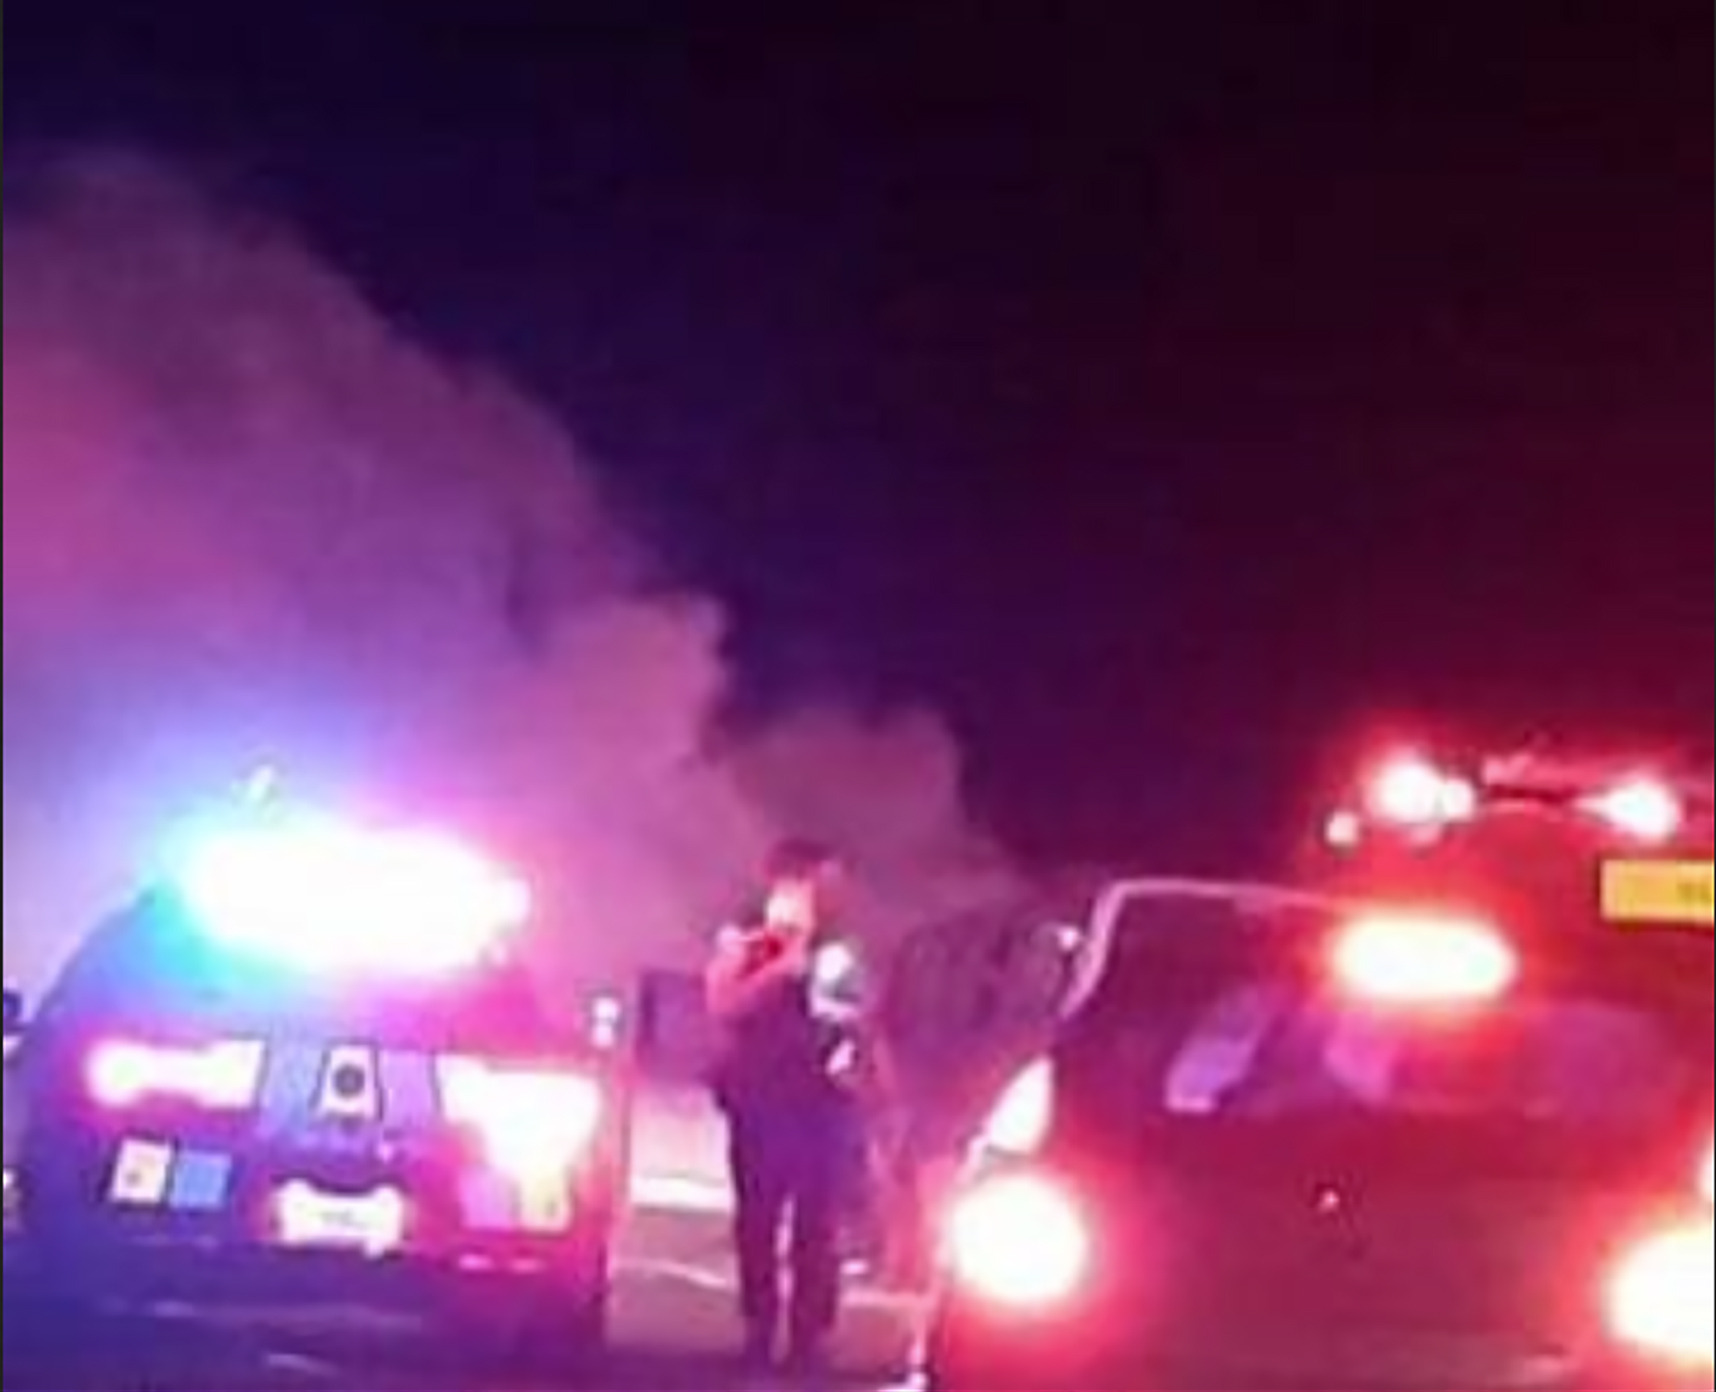 Motorist's desperate scream for help to remove driver trapped in burning car